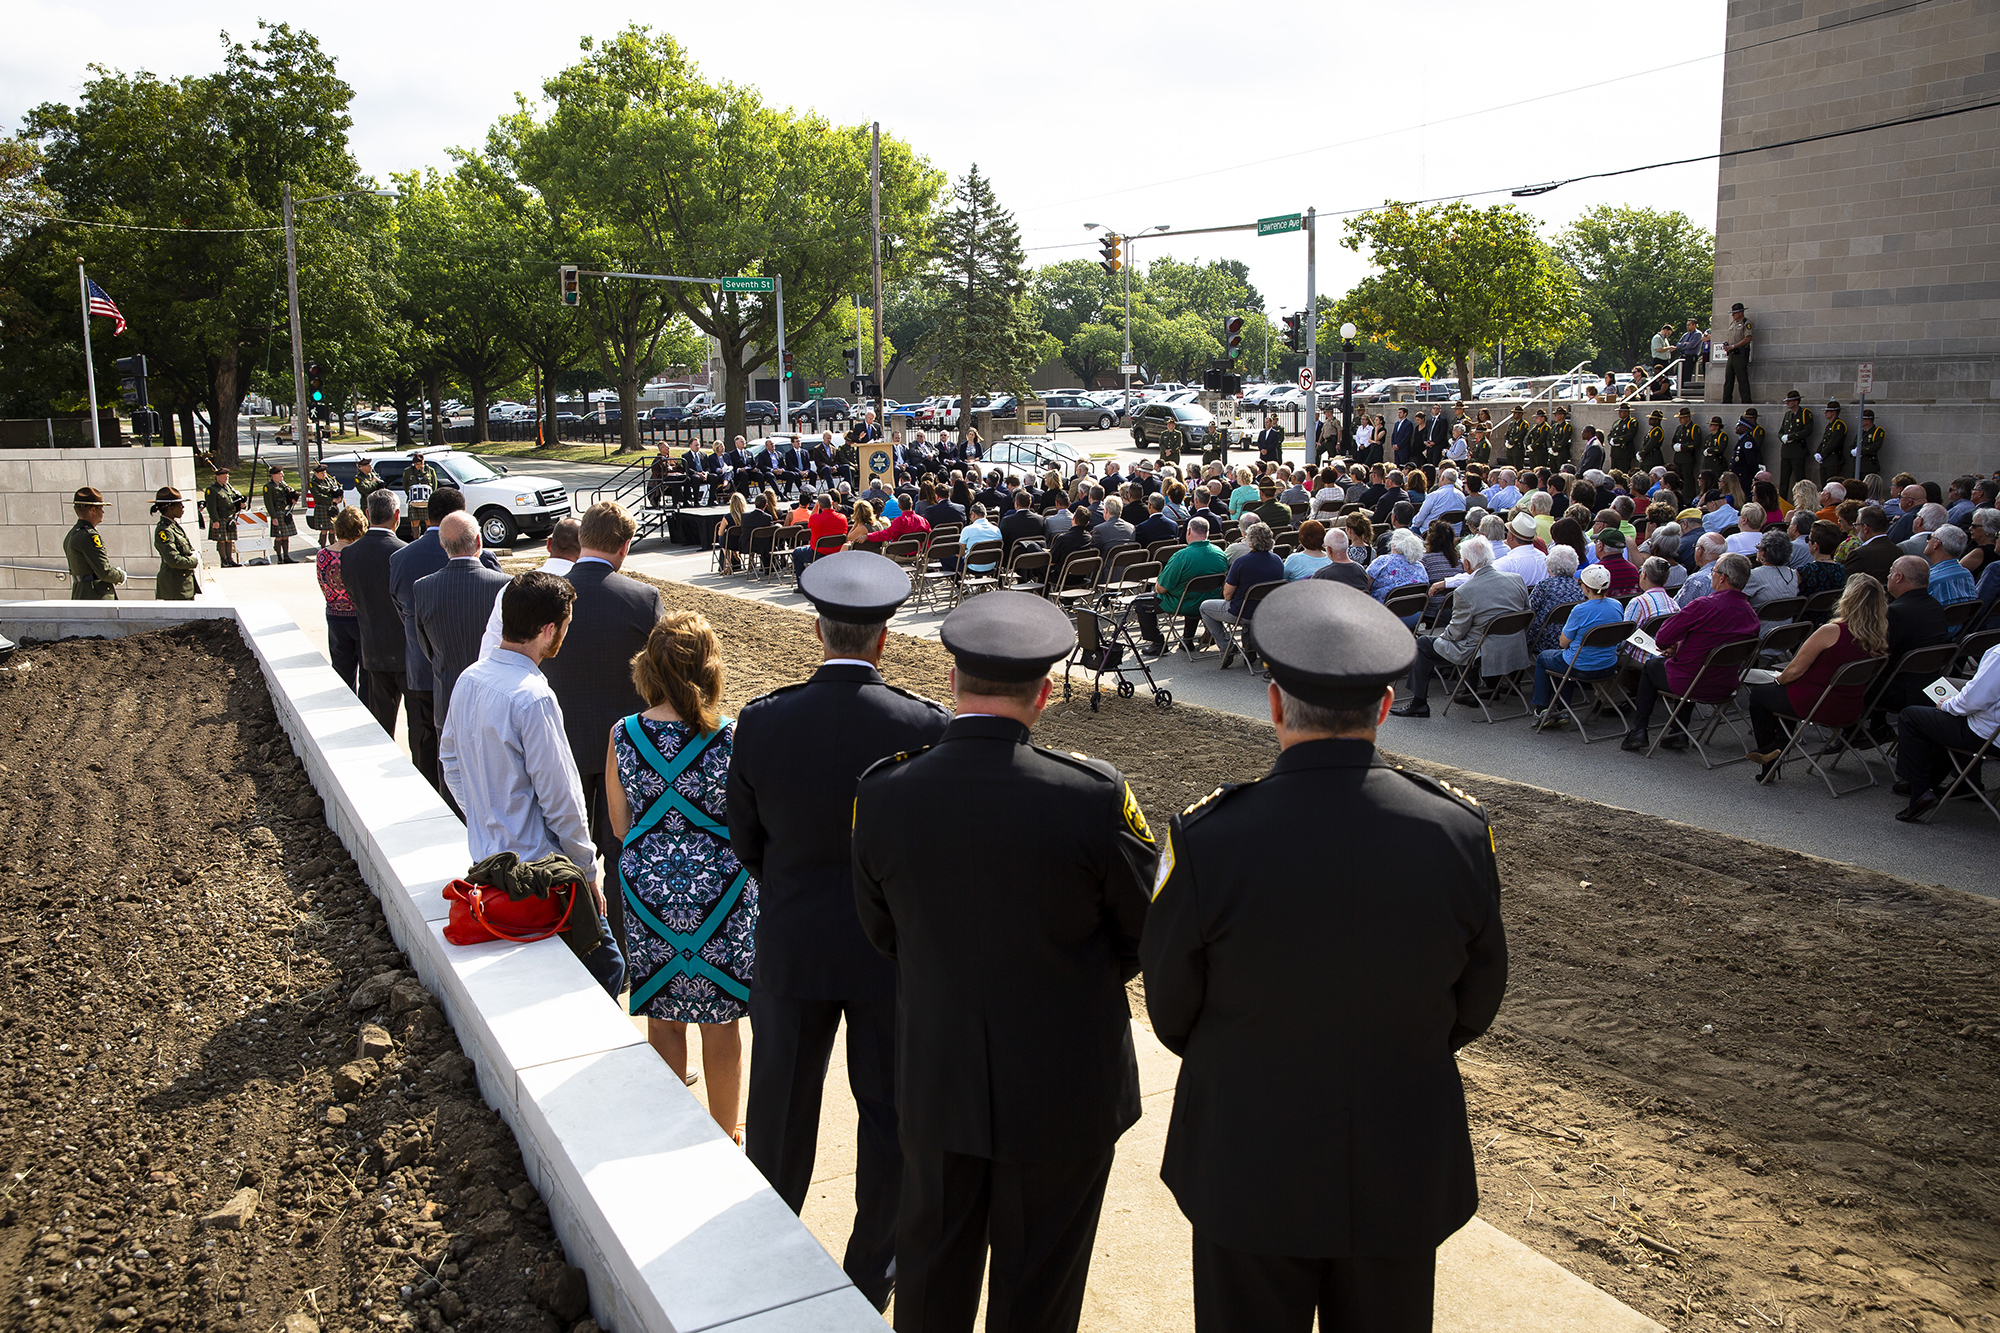 The new Illinois State Police Memorial Park was officially dedicated during a ceremony Tuesday, Oct. 2, 2018 near the State Police headquarters at the corner of Seventh and Lawrence streets in Springfield, Ill. [Rich Saal/The State Journal-Register]